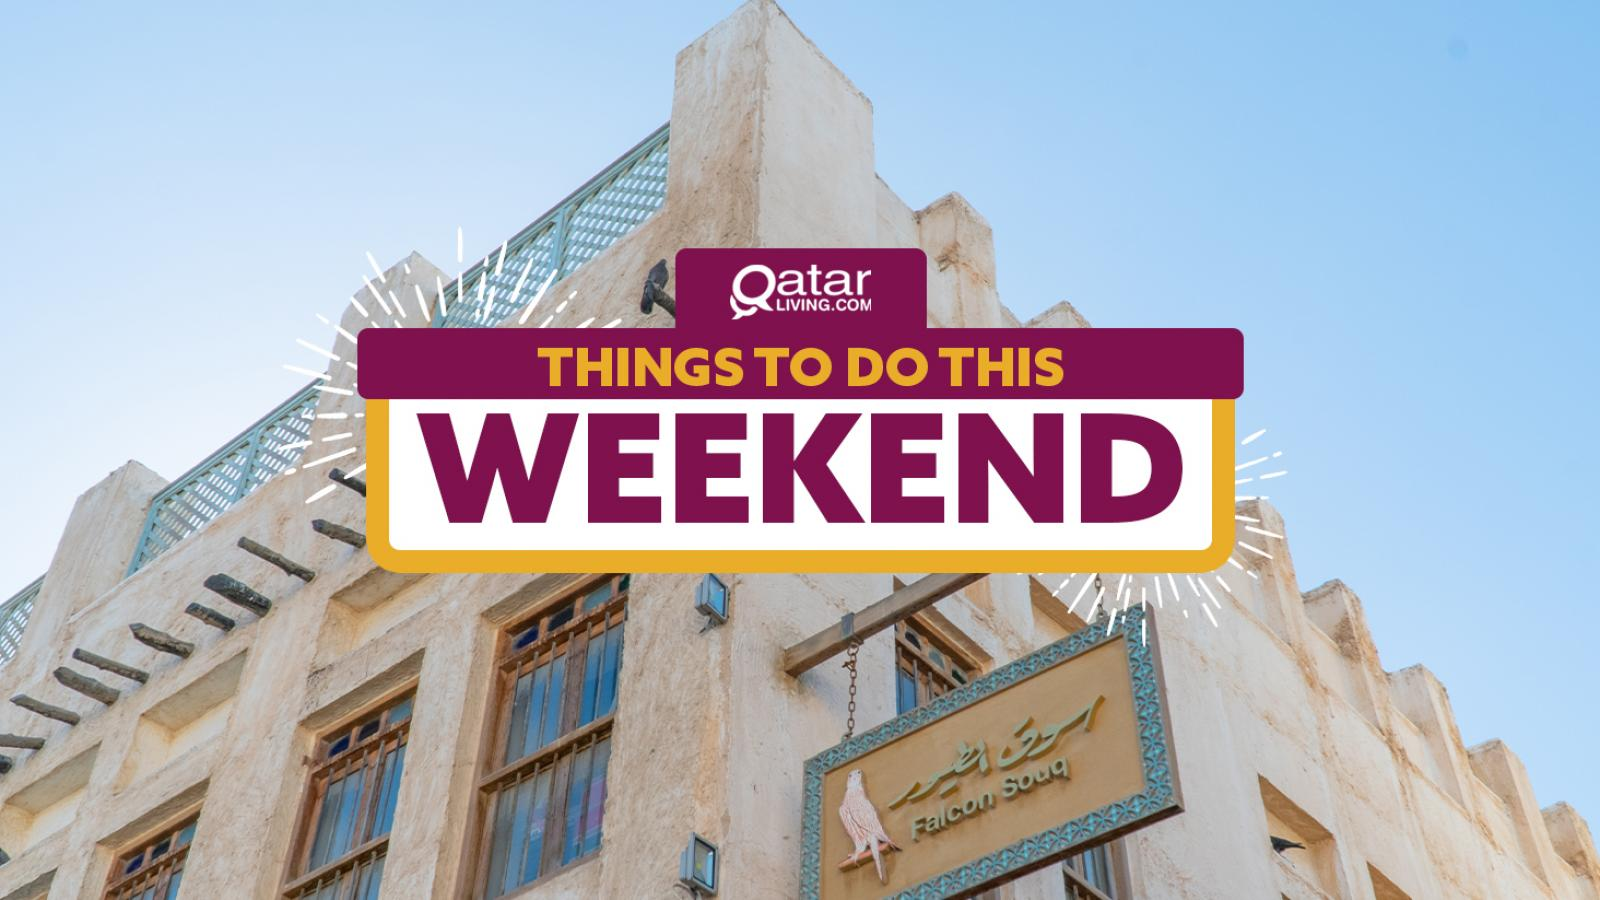 Things to do in Qatar this weekend: February 20-22